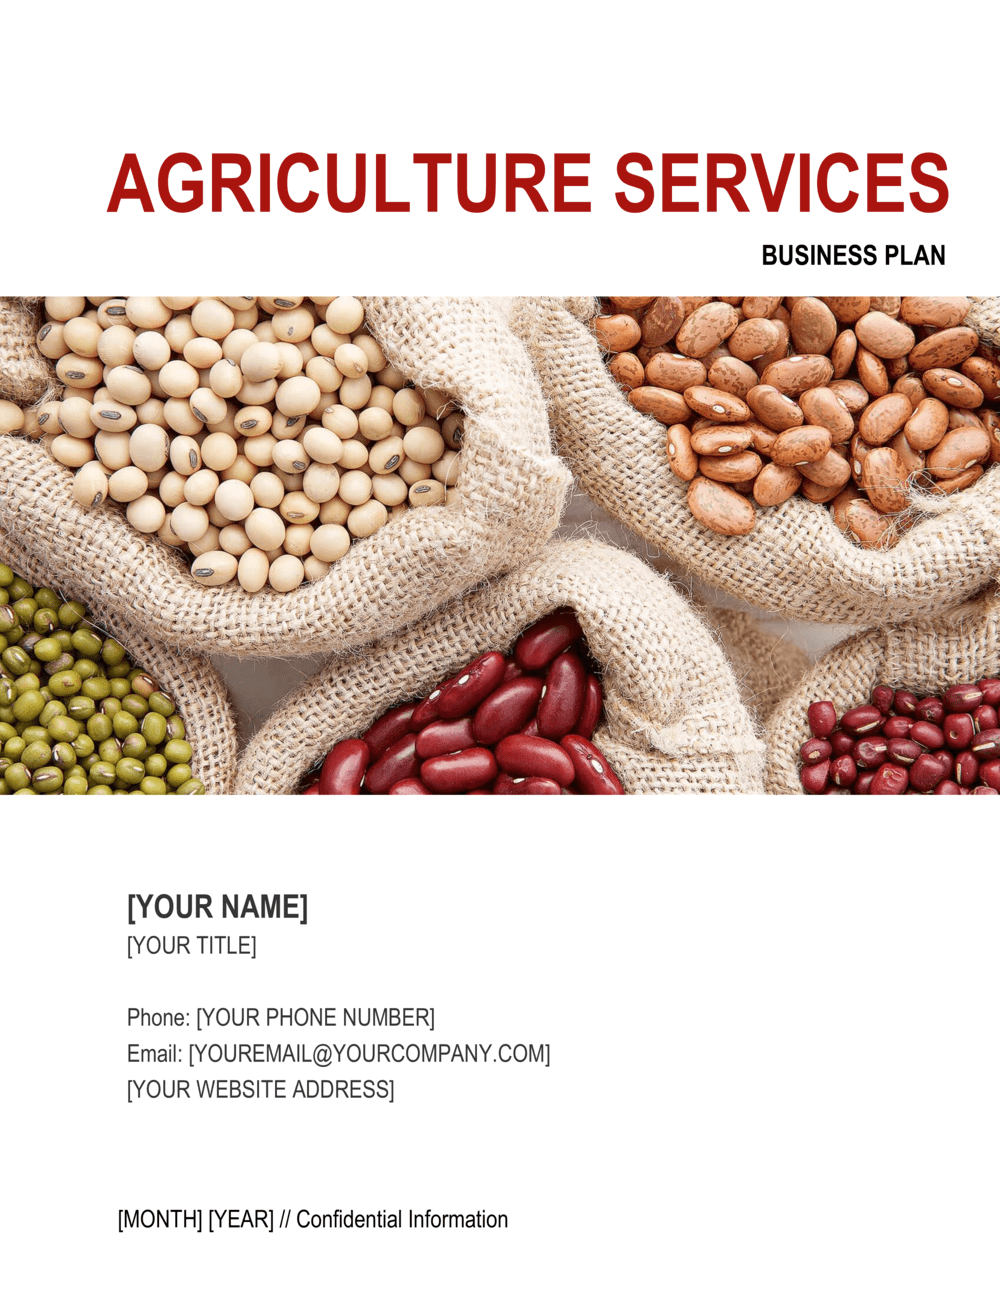 Business-in-a-Box's Agriculture Services Business Plan 3 Template